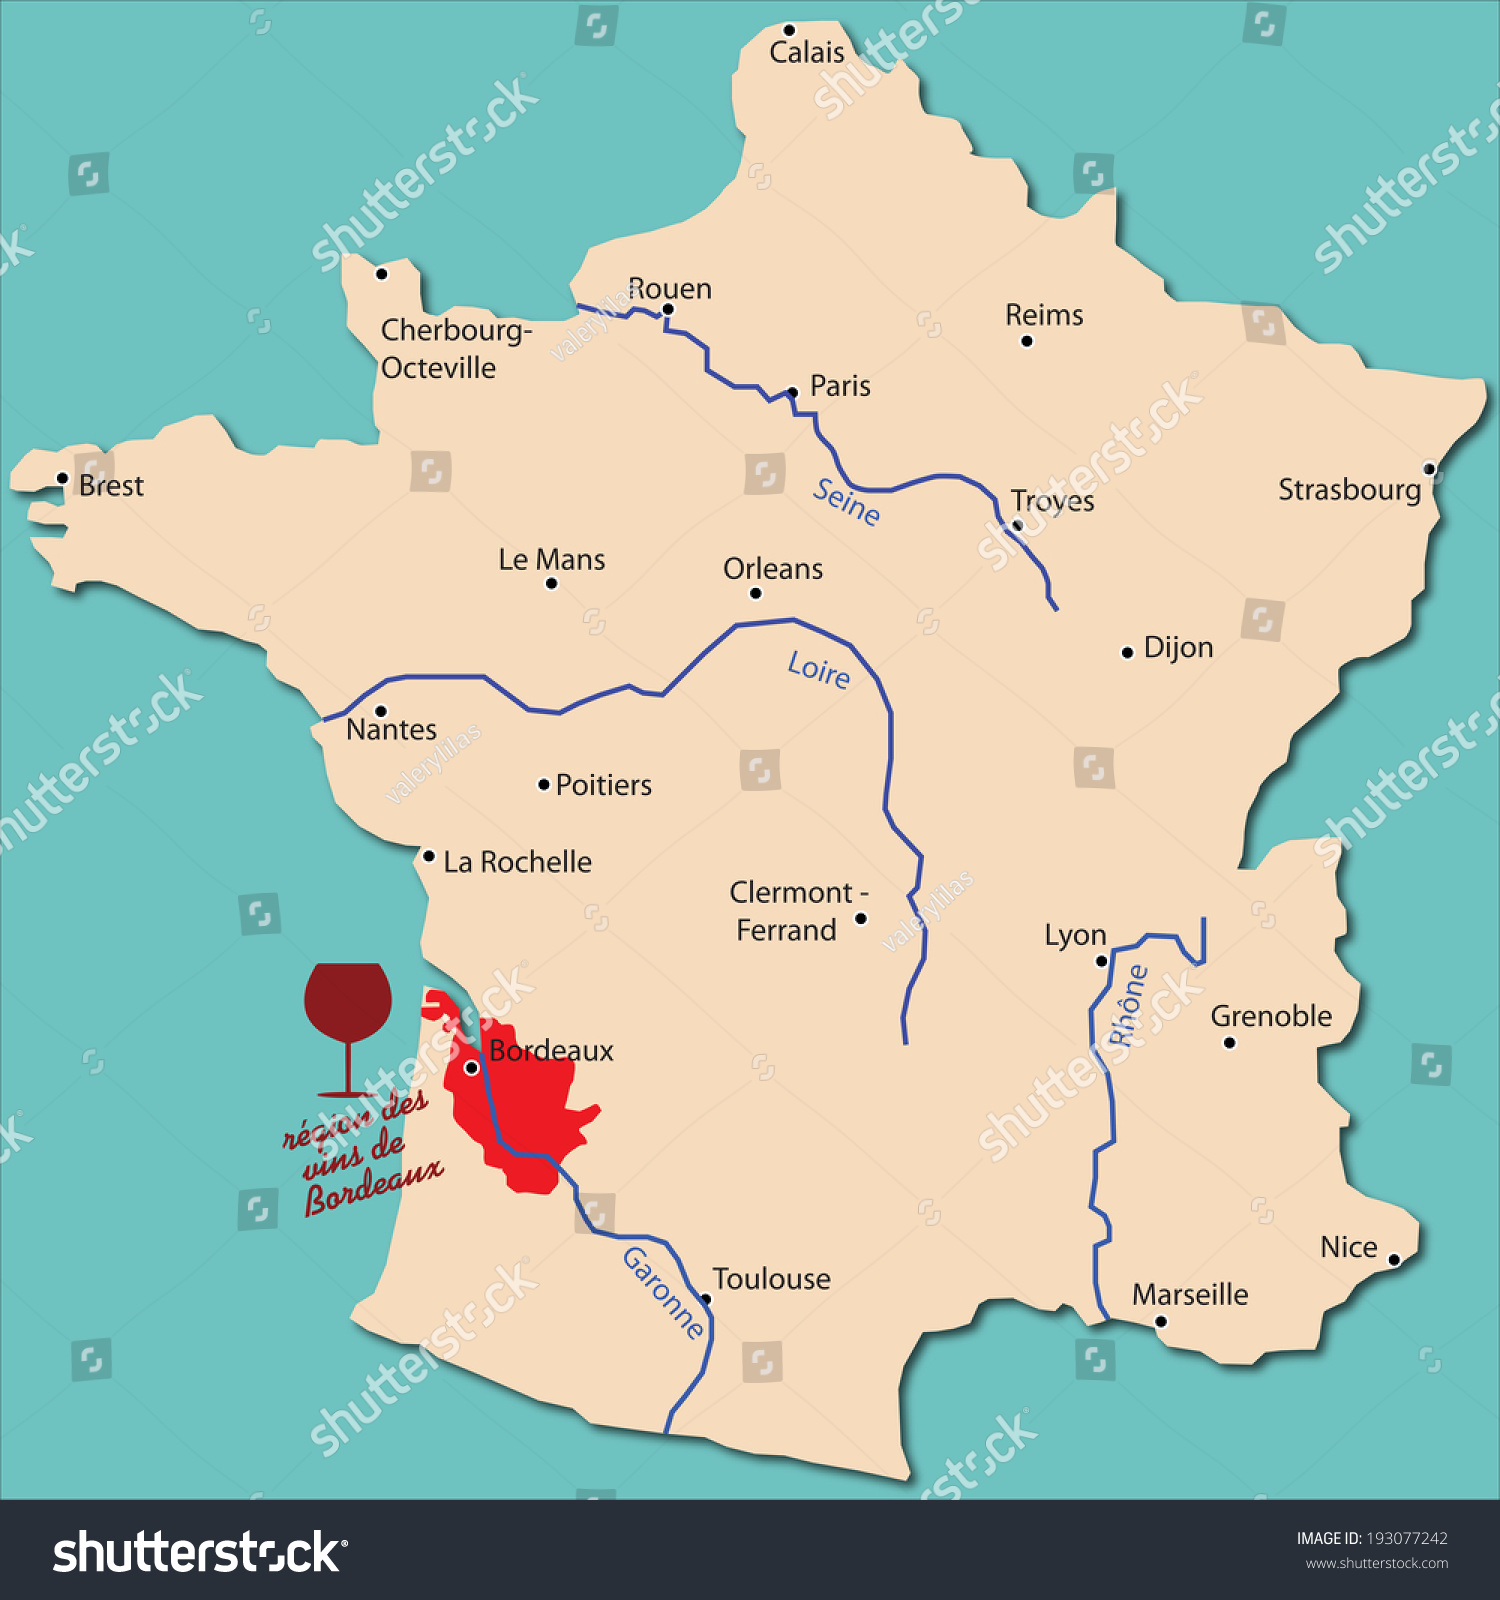 Bordeaux Map Of France.Map Wine Region Bordeaux France Stock Vector Royalty Free